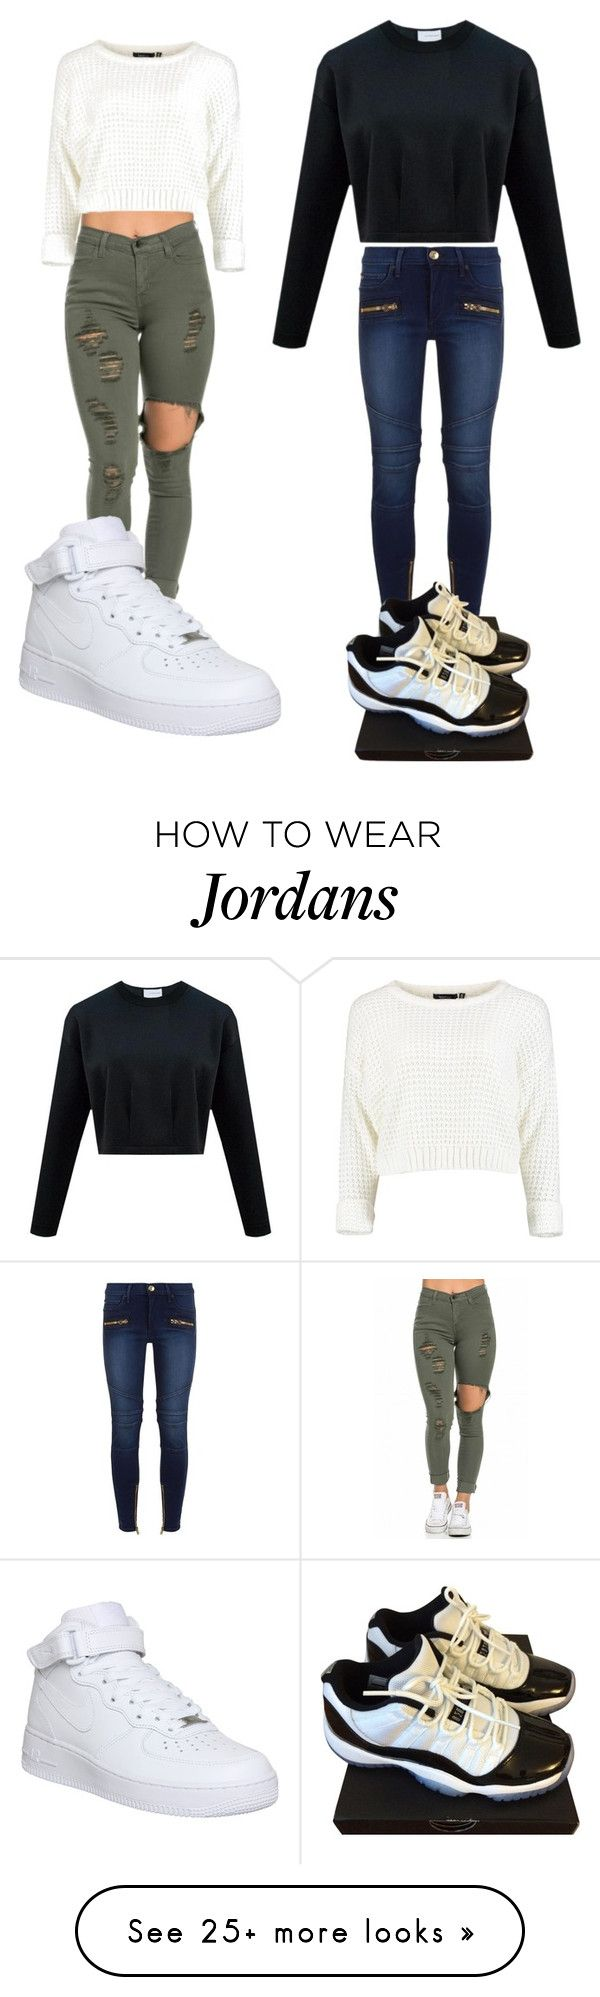 """"""""""" by michell-chaverria-01 on Polyvore featuring True Religion, NIKE, women's clothing, women, female, woman, misses and juniors"""